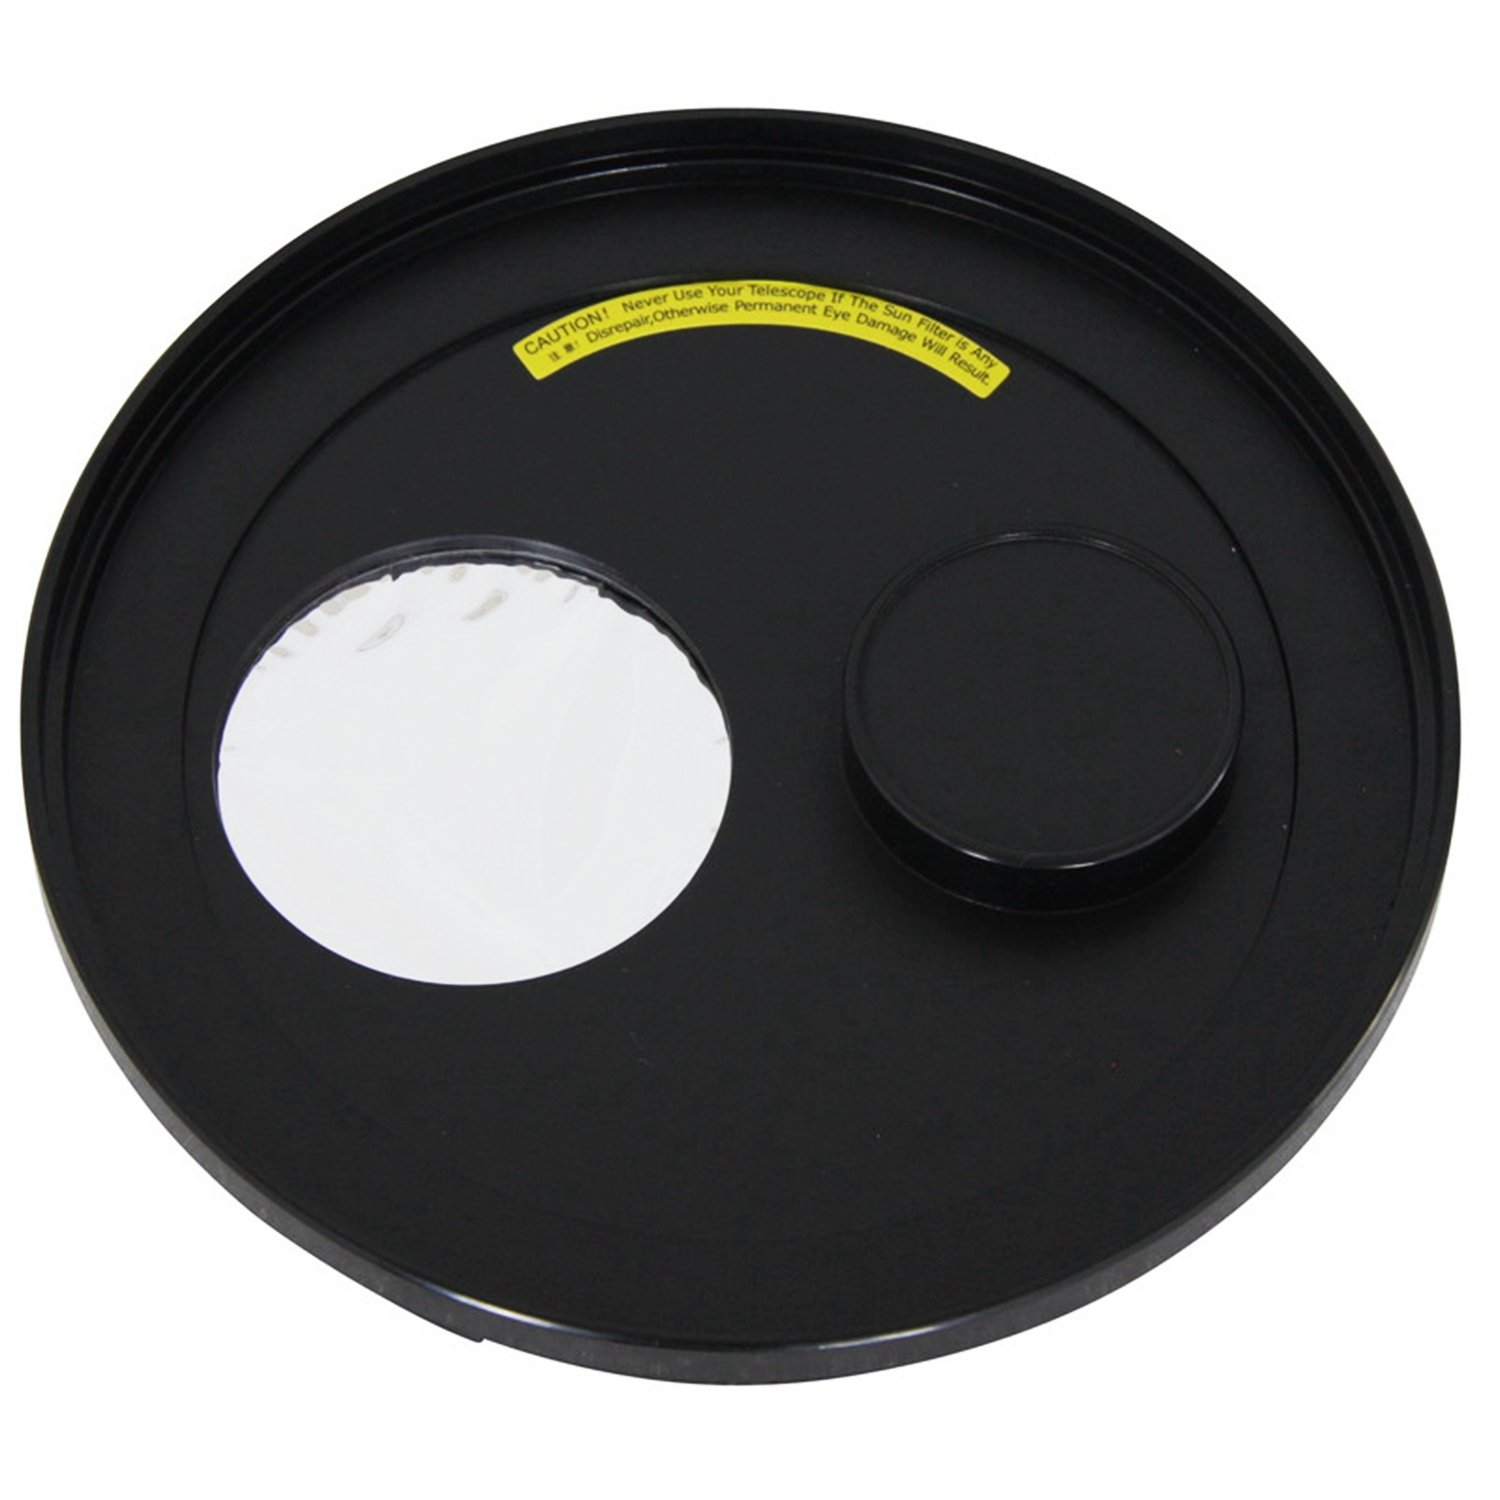 Astromania solar filter, 130mm - let you also do astronomy during the day SKU_AM_SF130